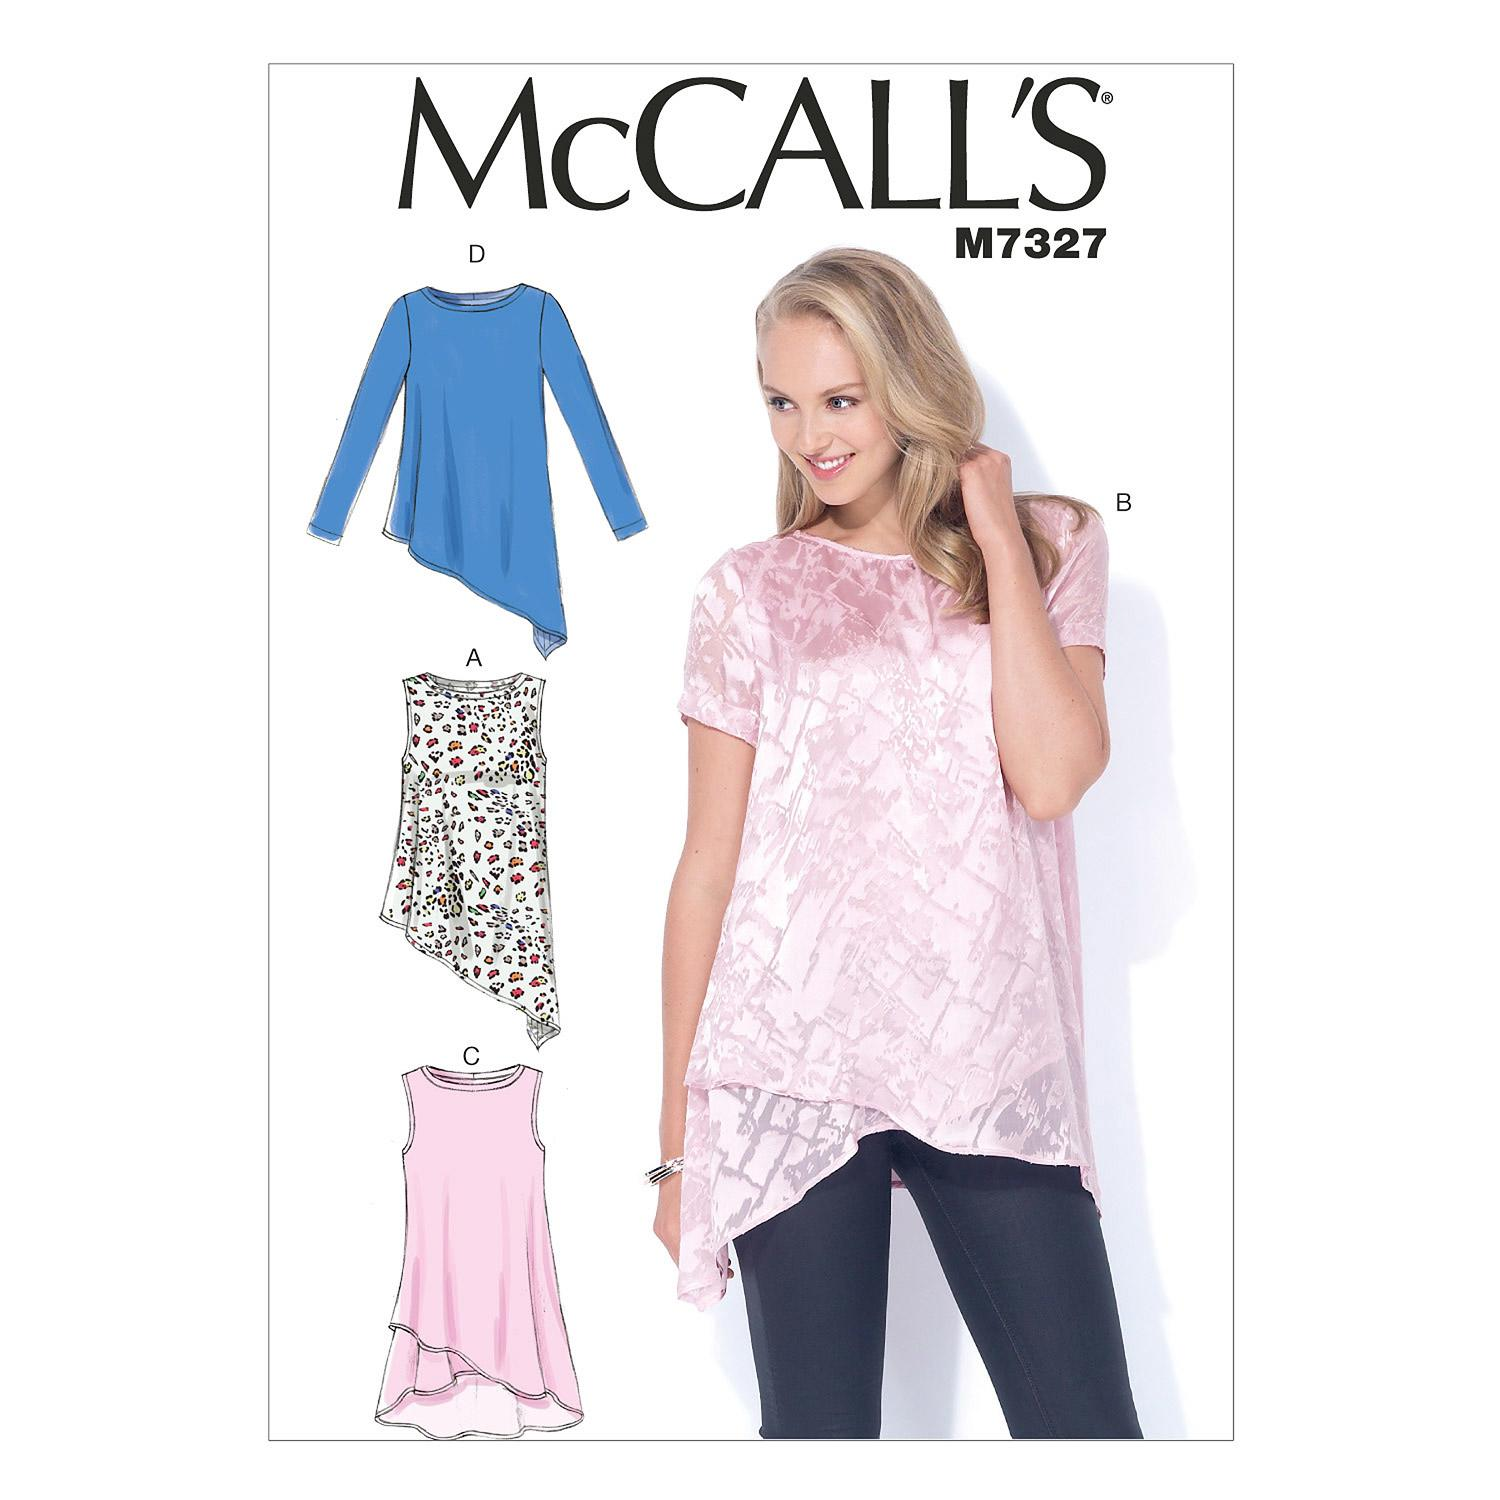 McCalls M7327 Tops/Tunics